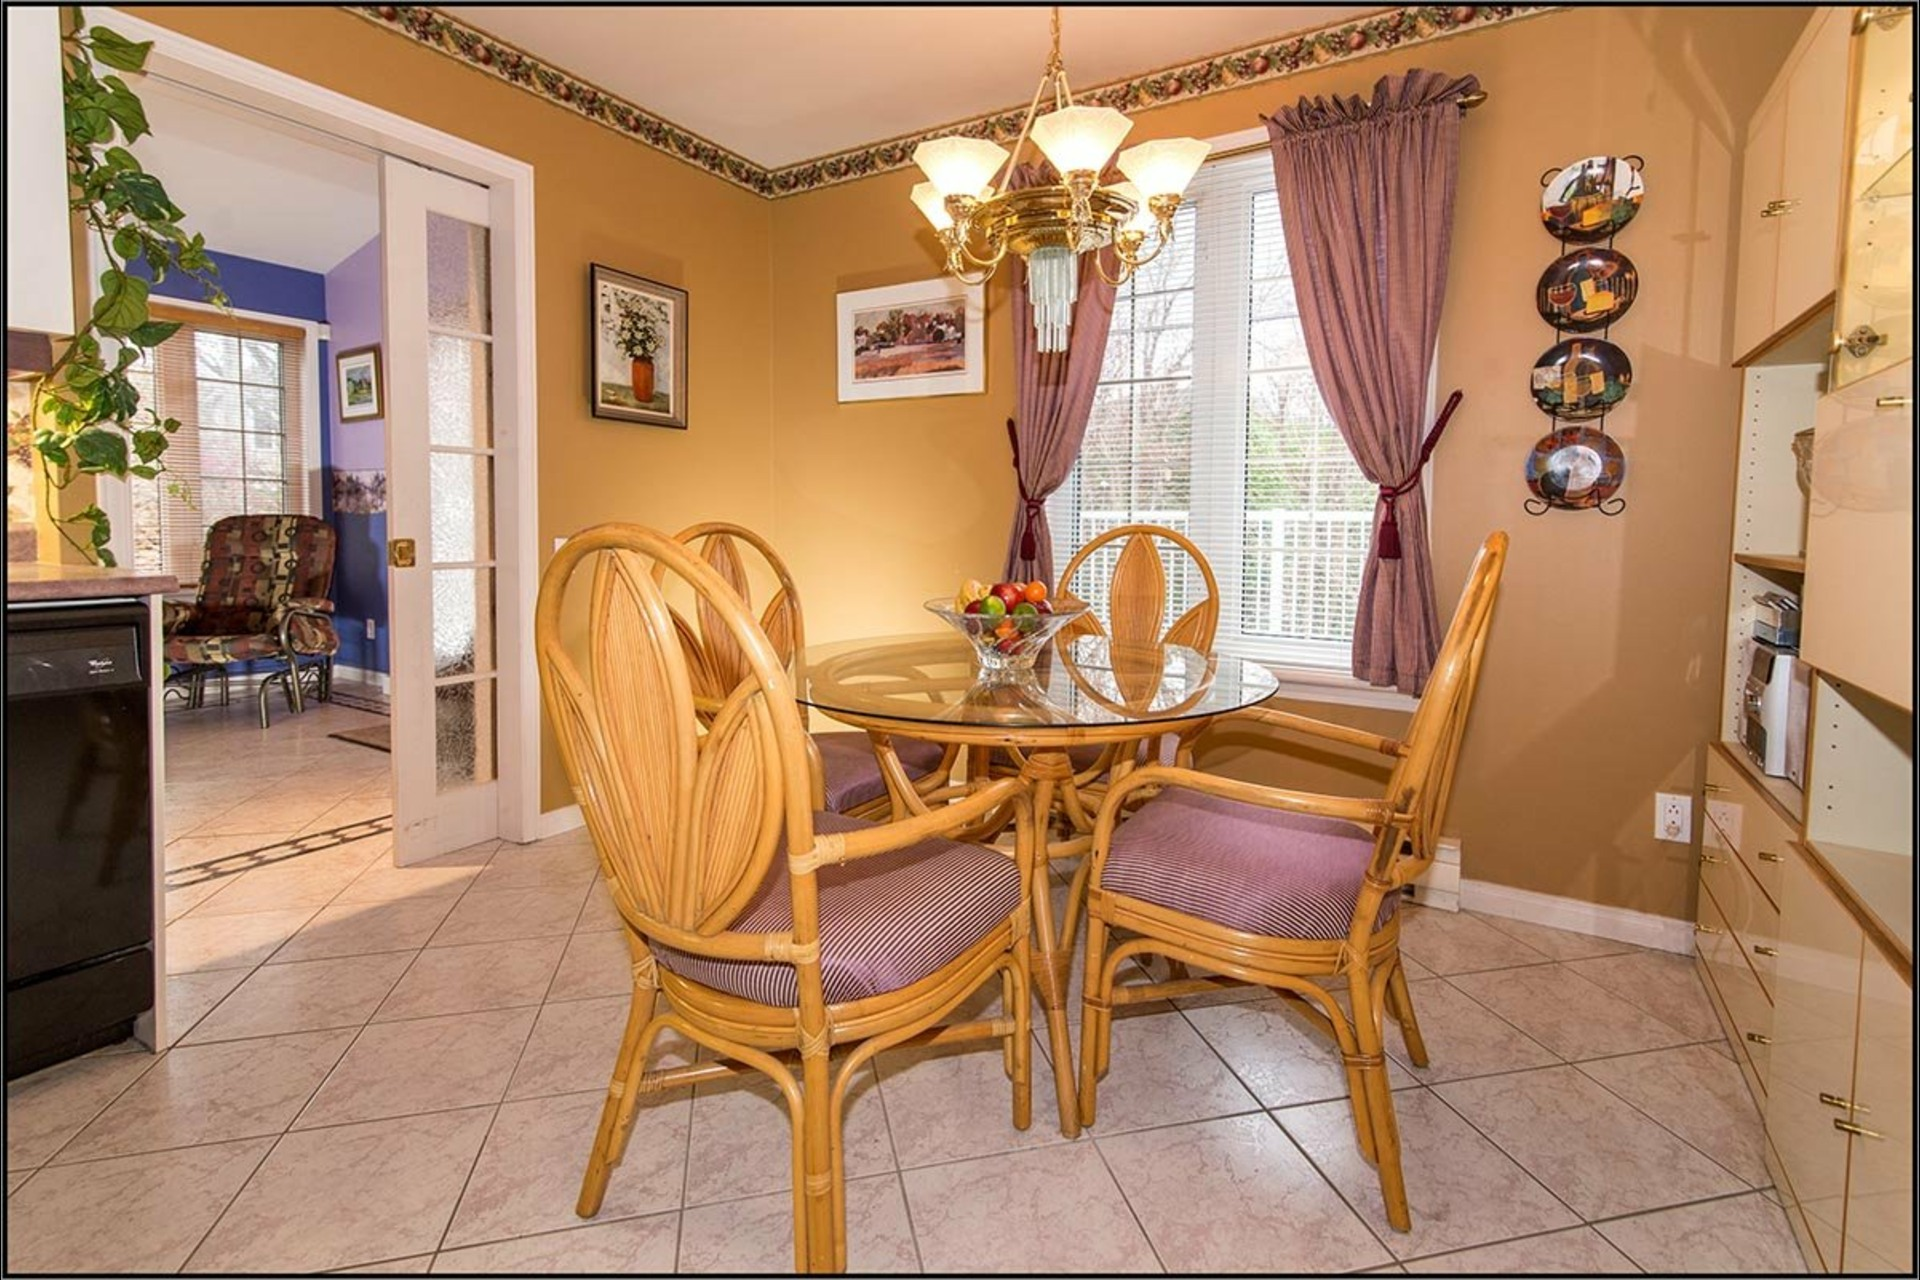 image 5 - House For sale Sainte-Foy/Sillery/Cap-Rouge Québec  - 11 rooms